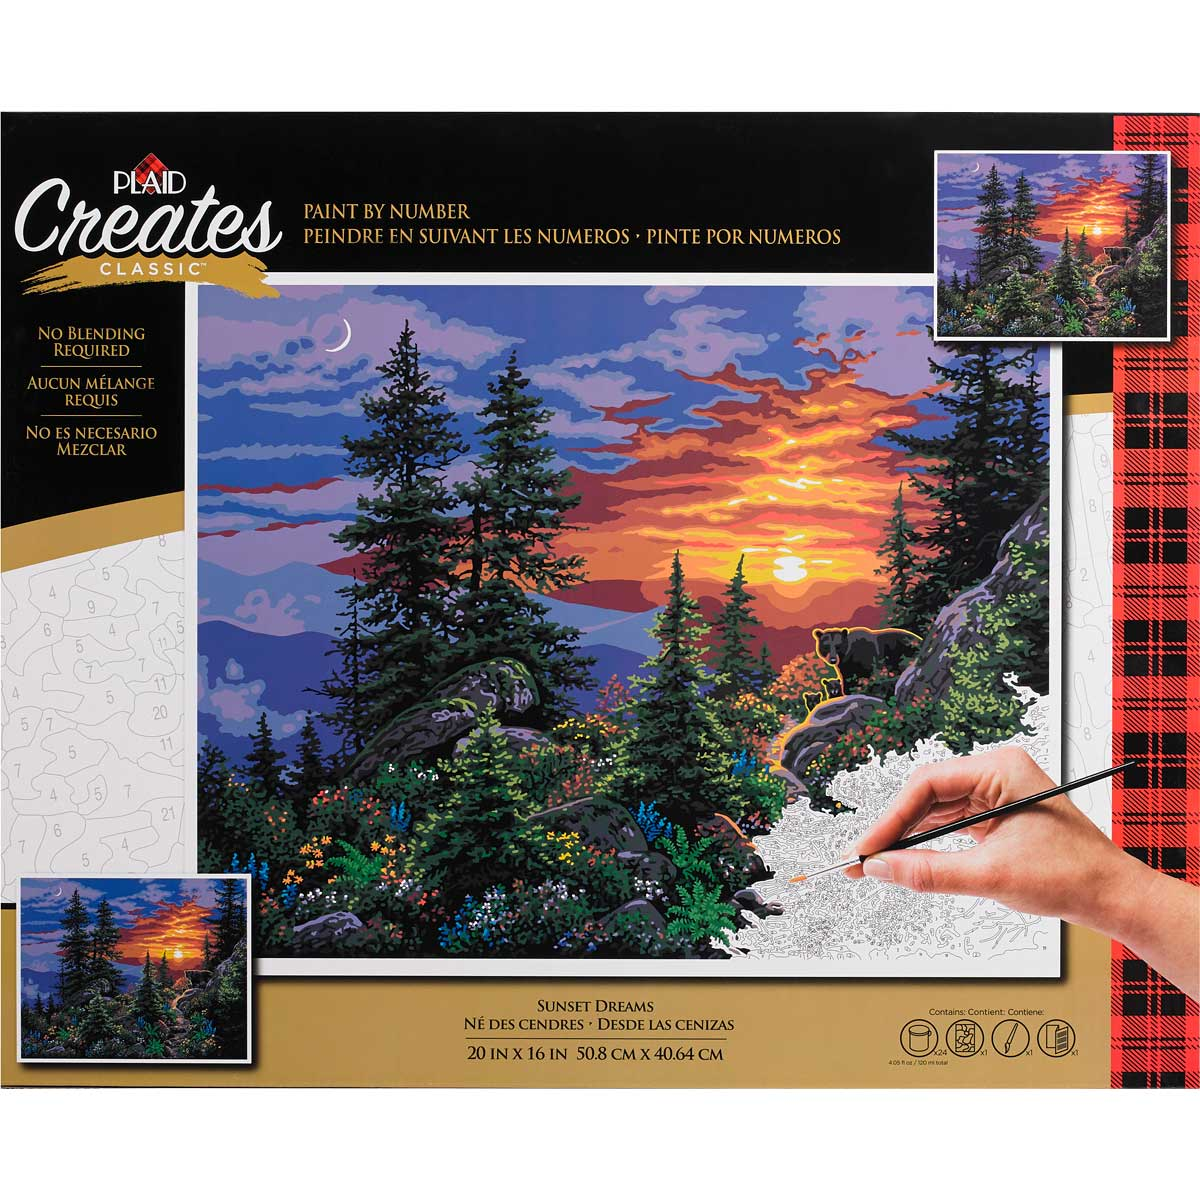 Plaid ® Paint by Number - Sunset Dreams